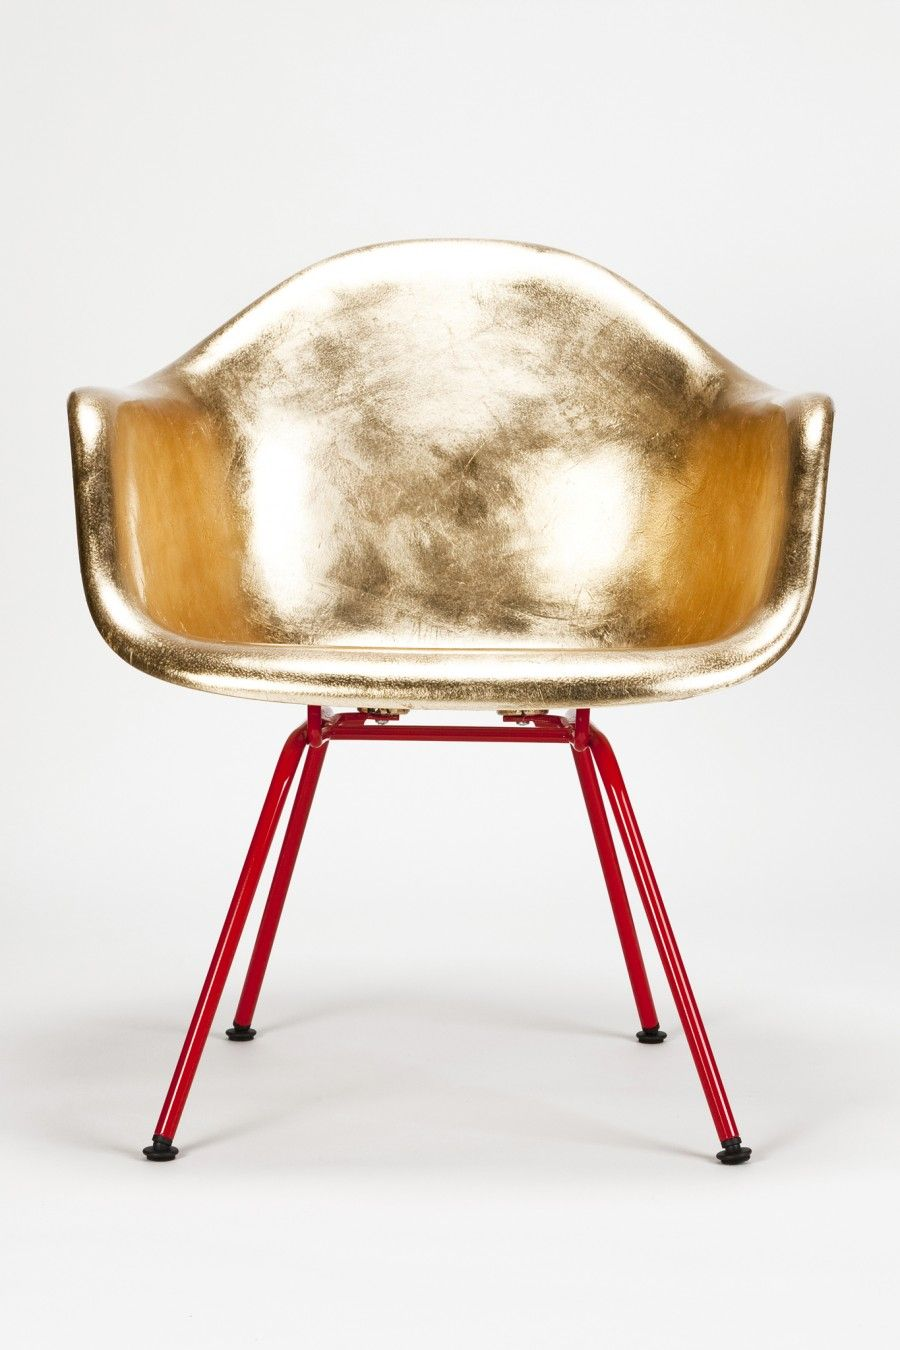 Vintage eames chairs - Eames And Jacobsen Go Goldy Gold By Reha Okay On Flodeau Com 012 Bling